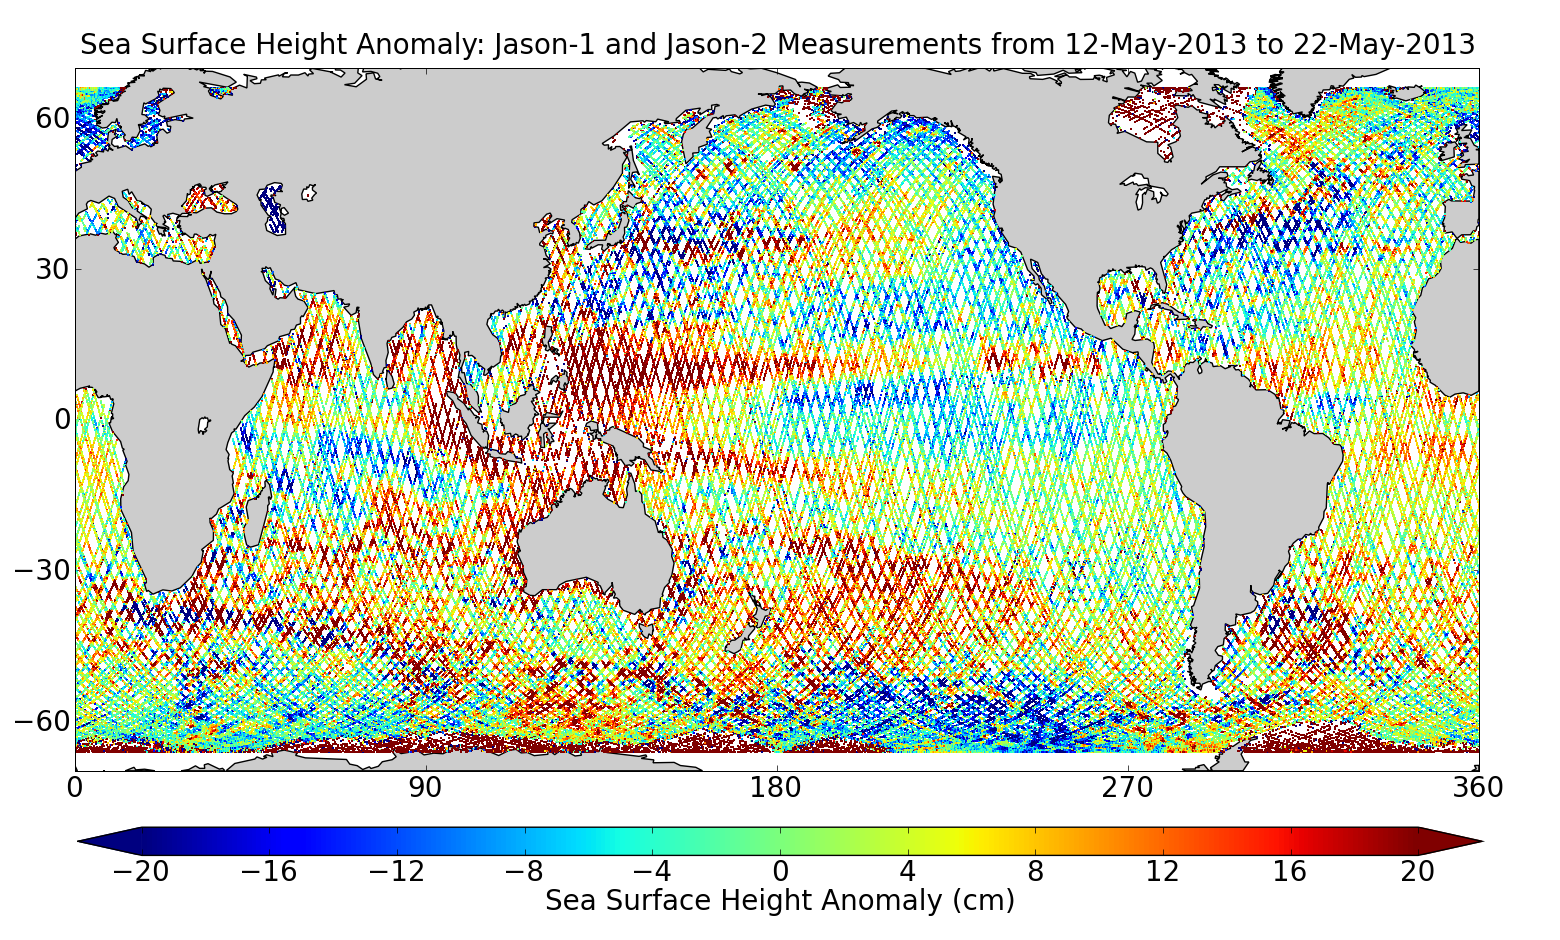 Sea Surface Height Anomaly: Jason-1 and Jason-2 Measurements from 12-May-2013 to 22-May-2013